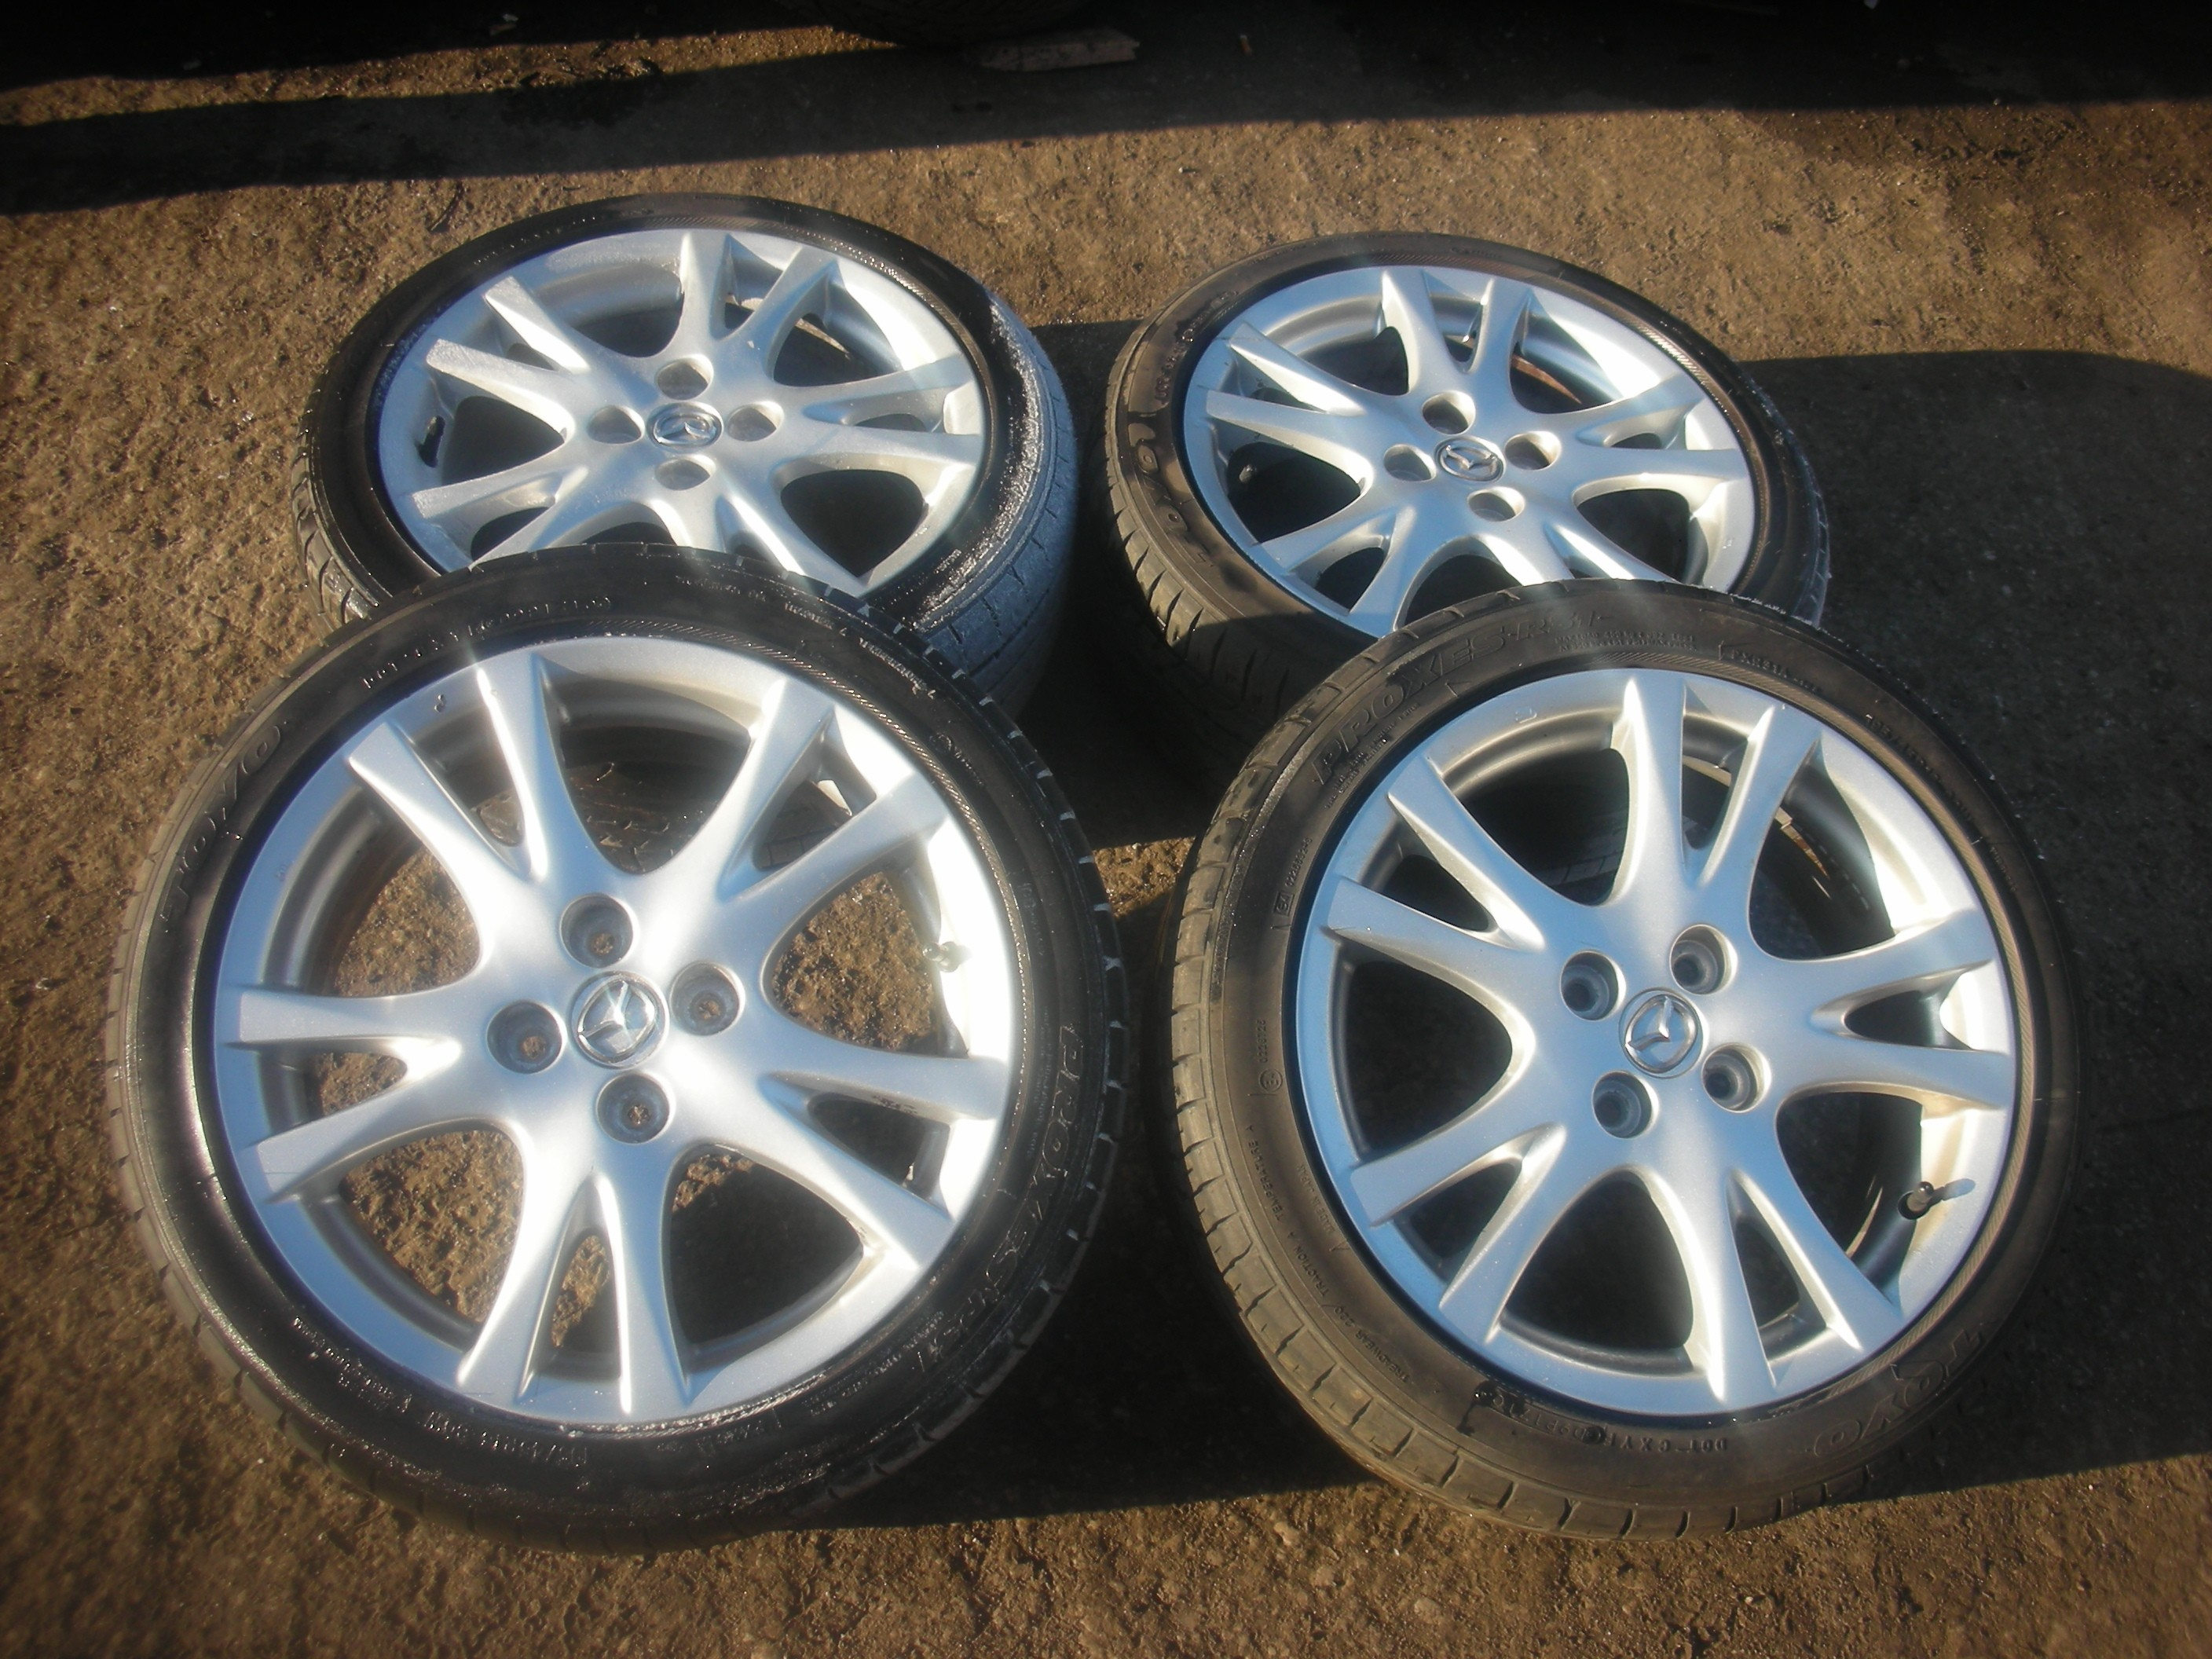 "ORIGINAL SET OF 4 MAZDA 2 16"" ALLOY WHEELS AND TYRES 09 SPORT."